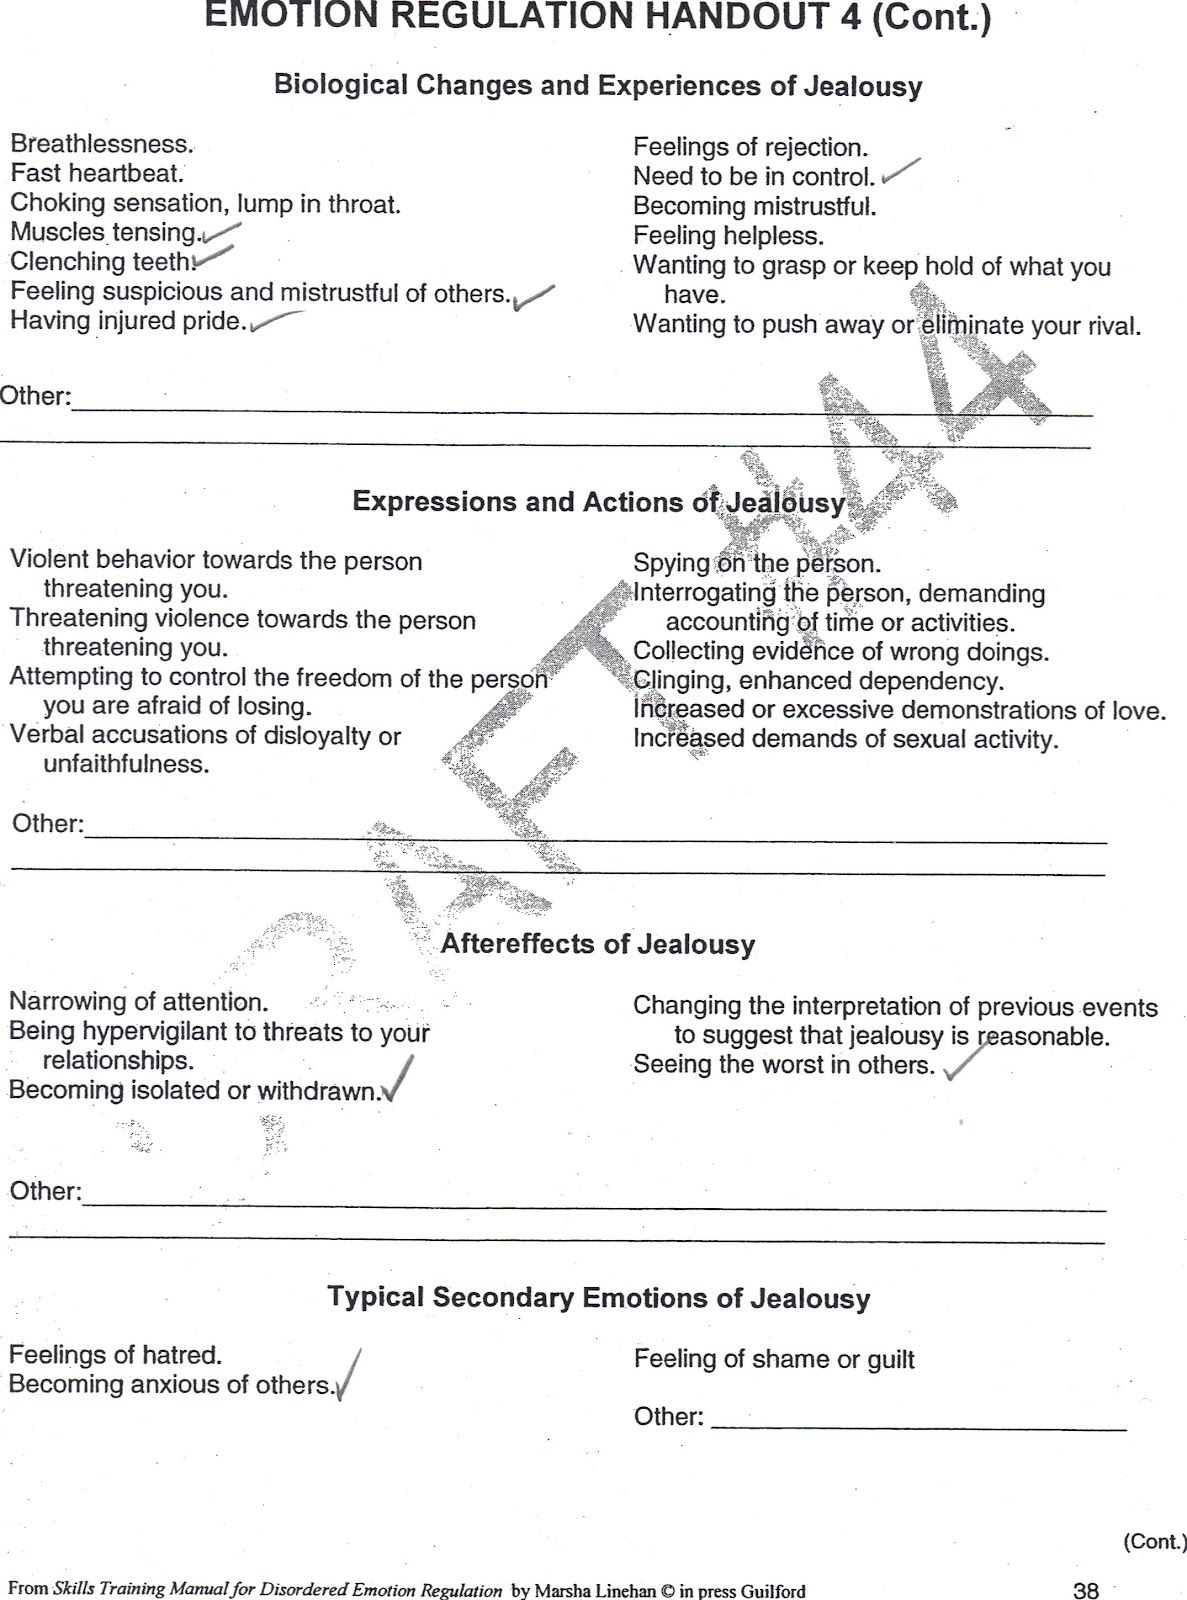 Worksheets Dialectical Behavior Therapy Worksheets jealousy worksheet healingfrombpd org emotion healing from bpd a journey of living with and borderline personality disorder dialectical behavior therapy debb